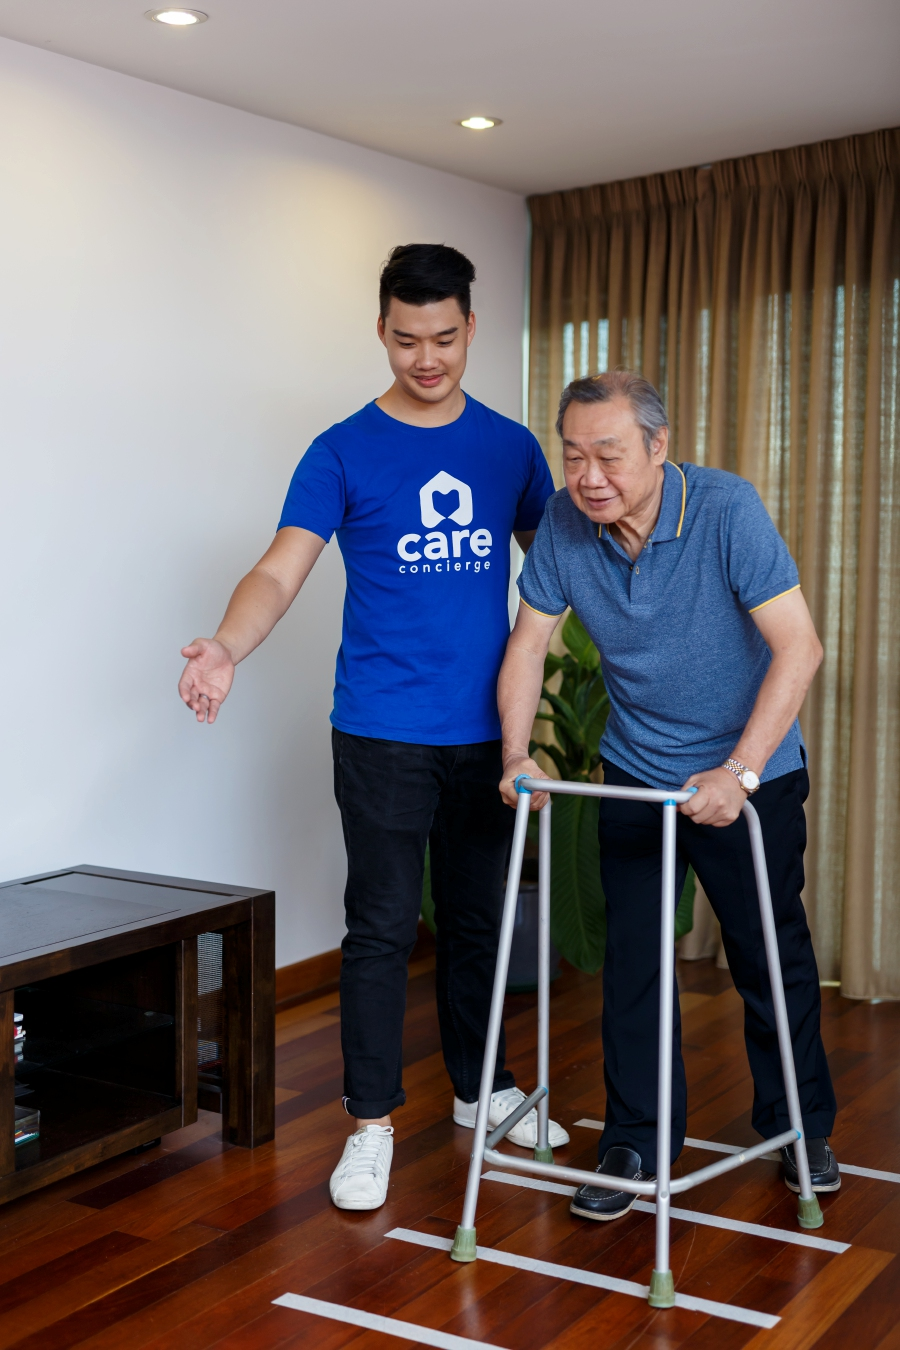 Care Concierge services include caregiving services for theelderly in residence of their choice.